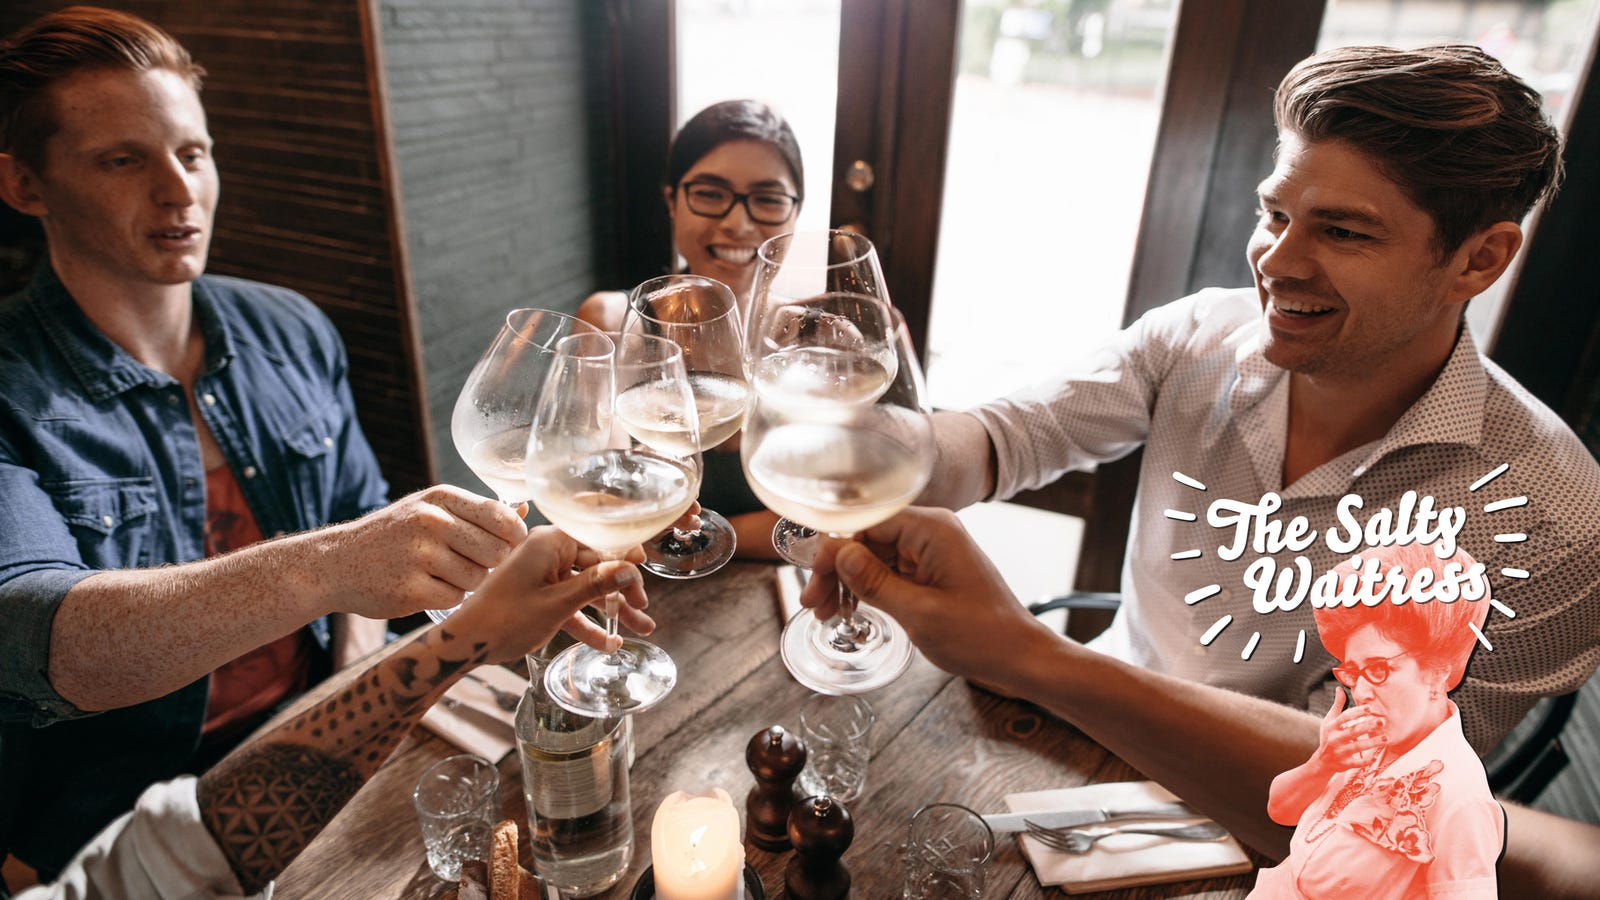 Ask The Salty Waitress: Help me nicely get rid of these camped-out customers